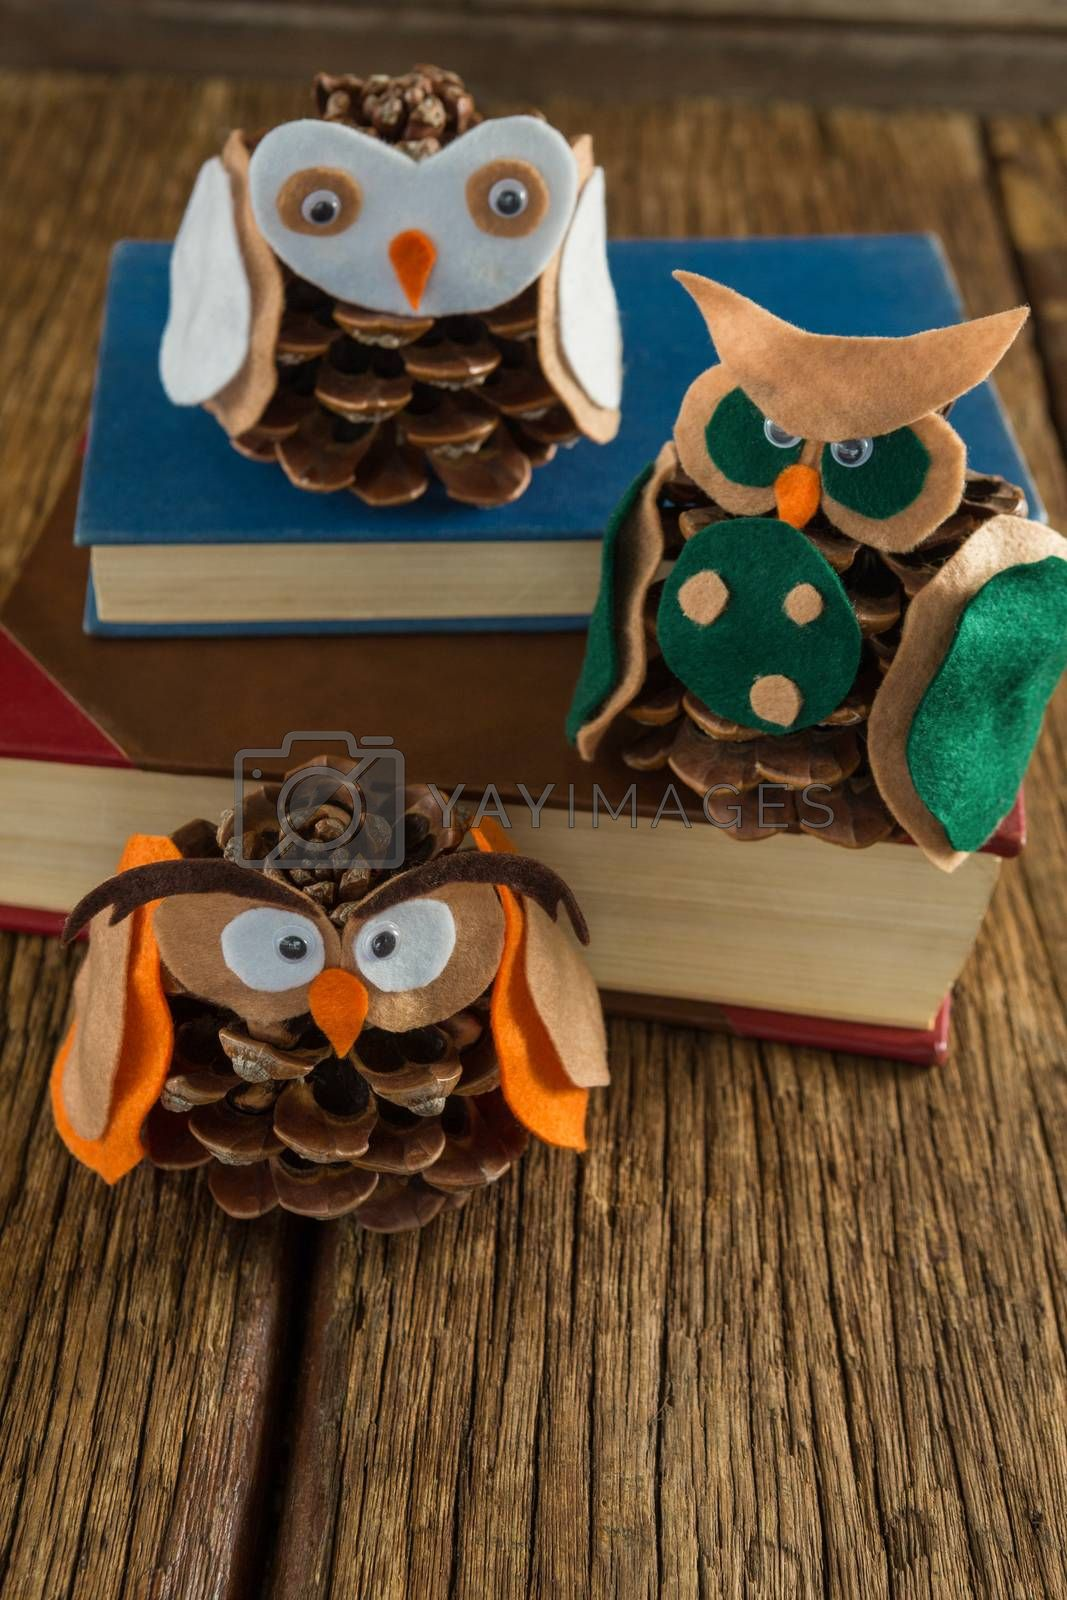 Owl decorated with pine cone and book stack on wooden table by Wavebreakmedia